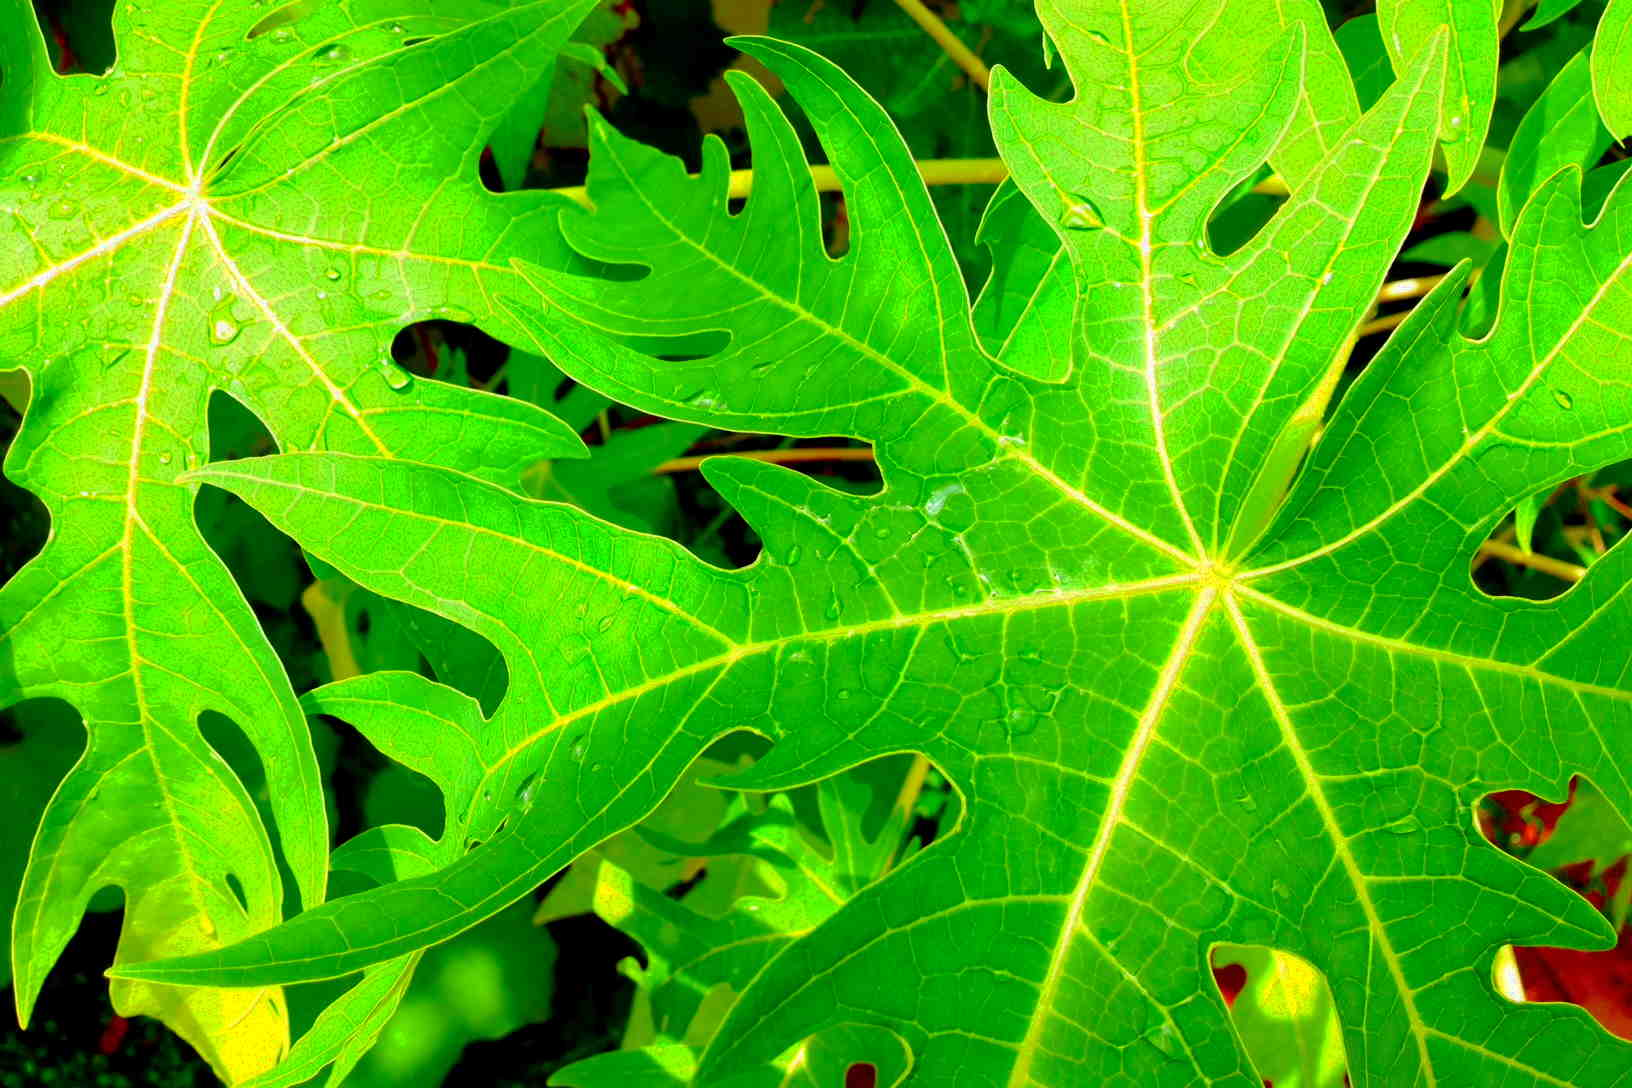 15 Uses for Papaya Leaves - A Powerful Cure for Cancer